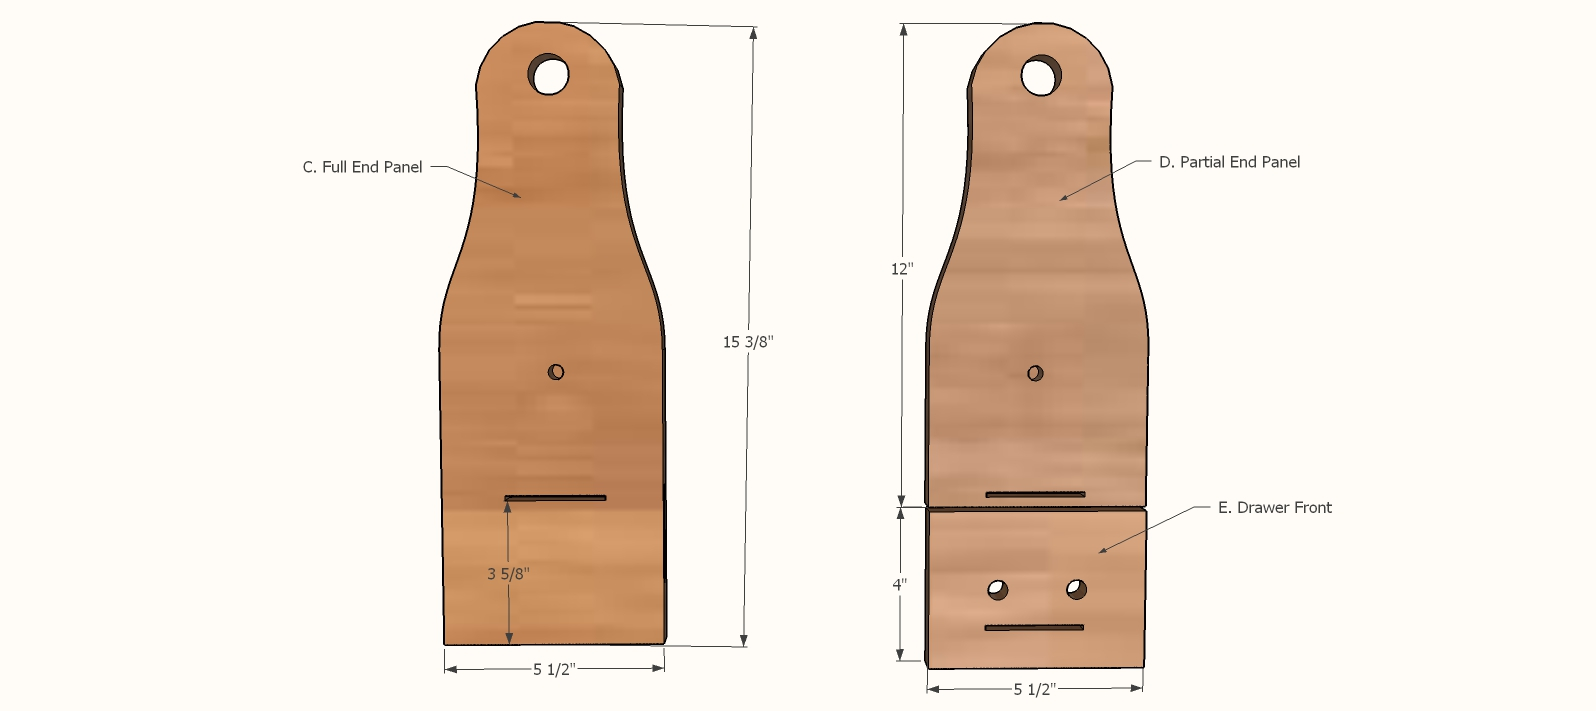 grill caddy end panel templates - 2